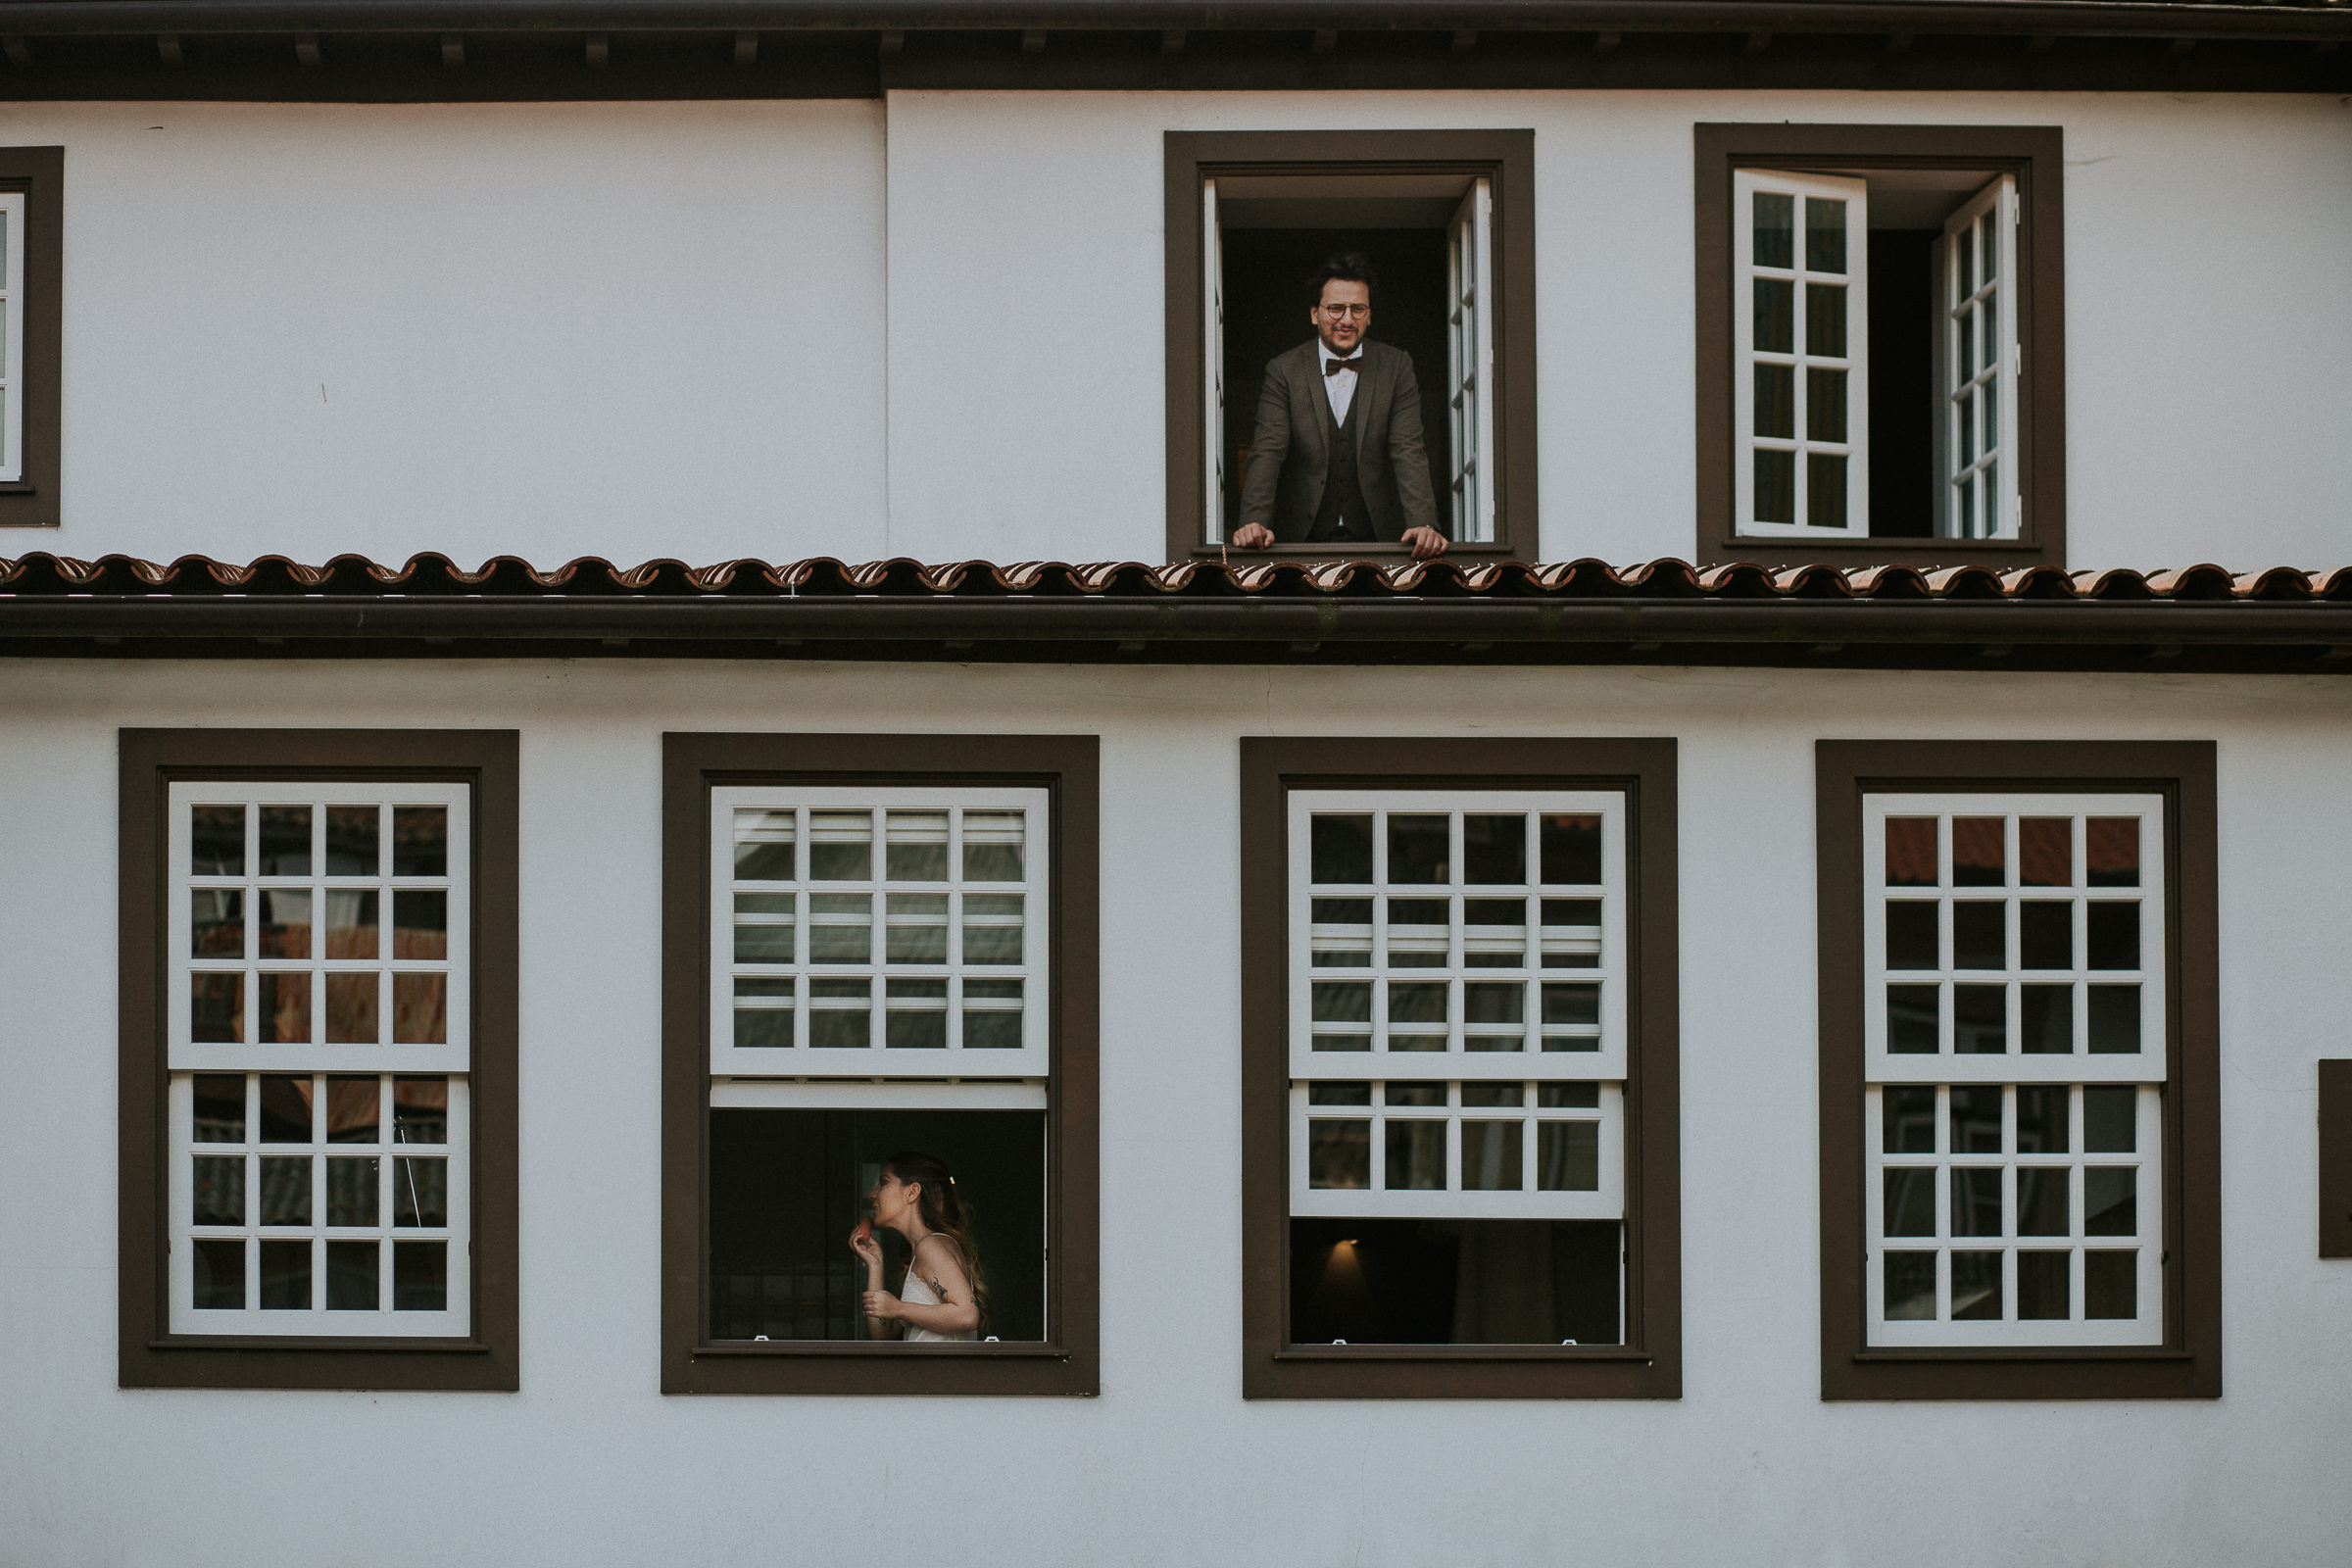 bride and groom getting ready on different floors from a building outside view